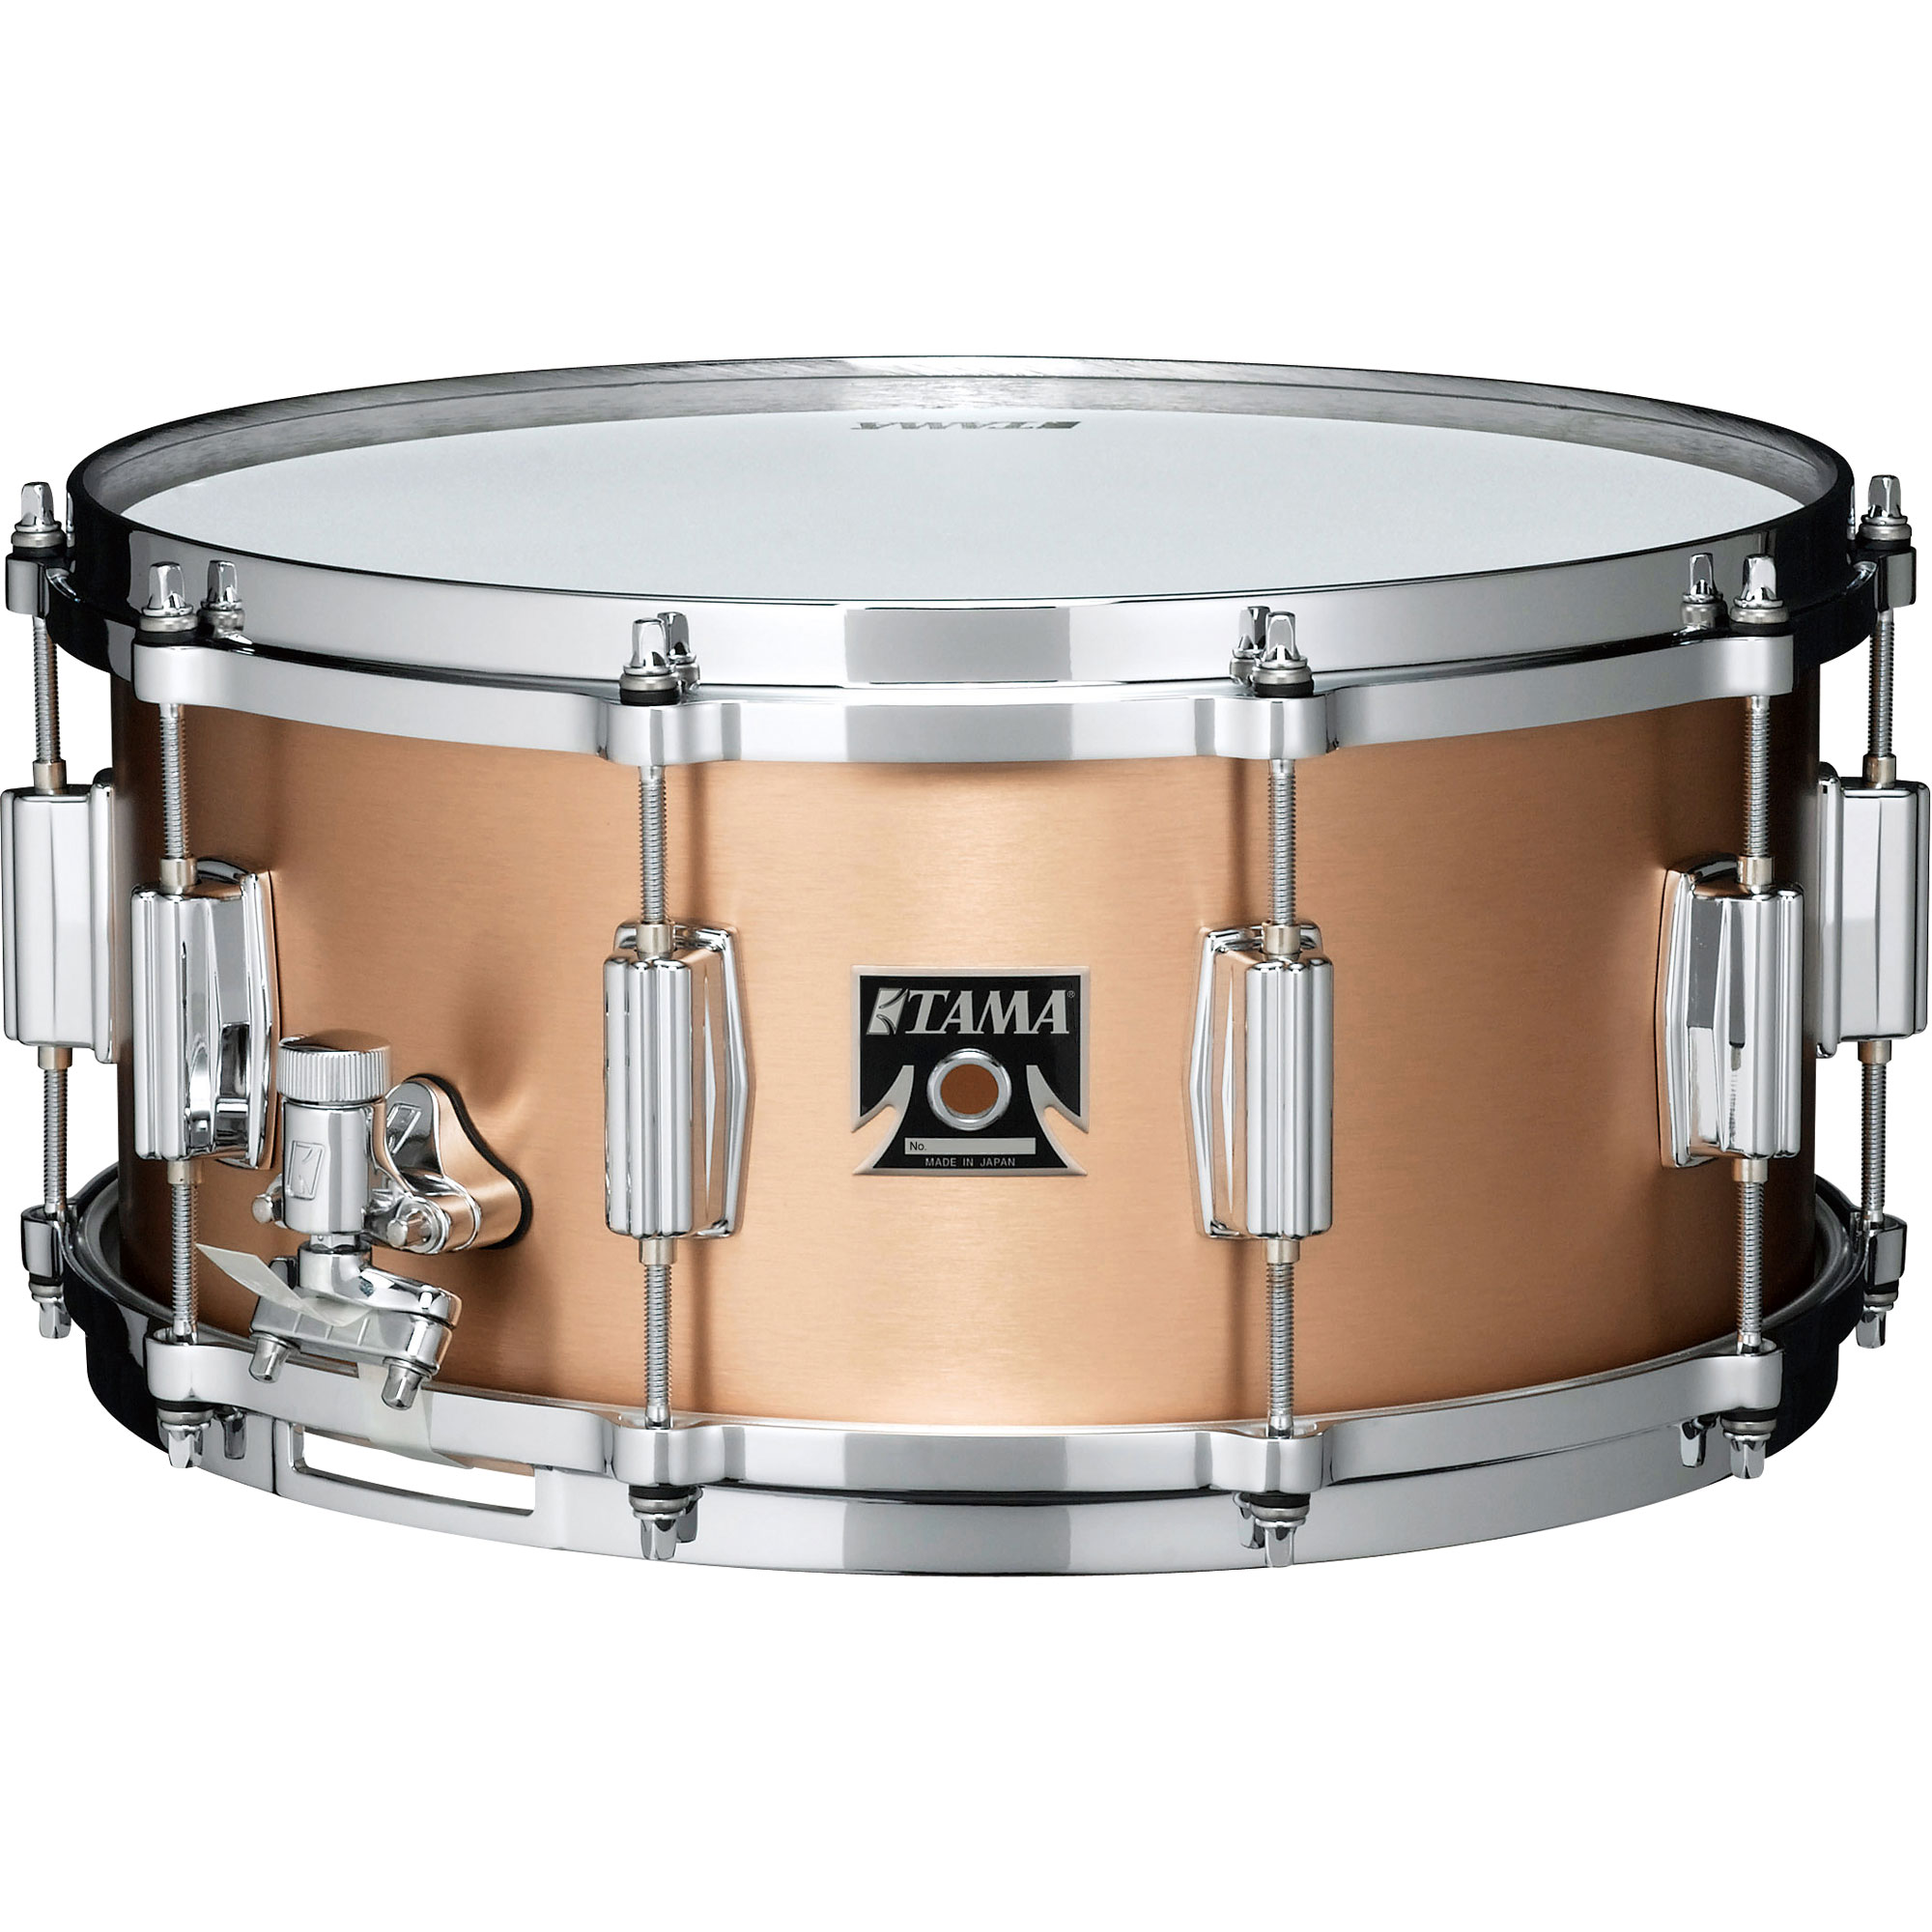 "Tama 6.5"" x 14"" Bell Brass Snare Drum"